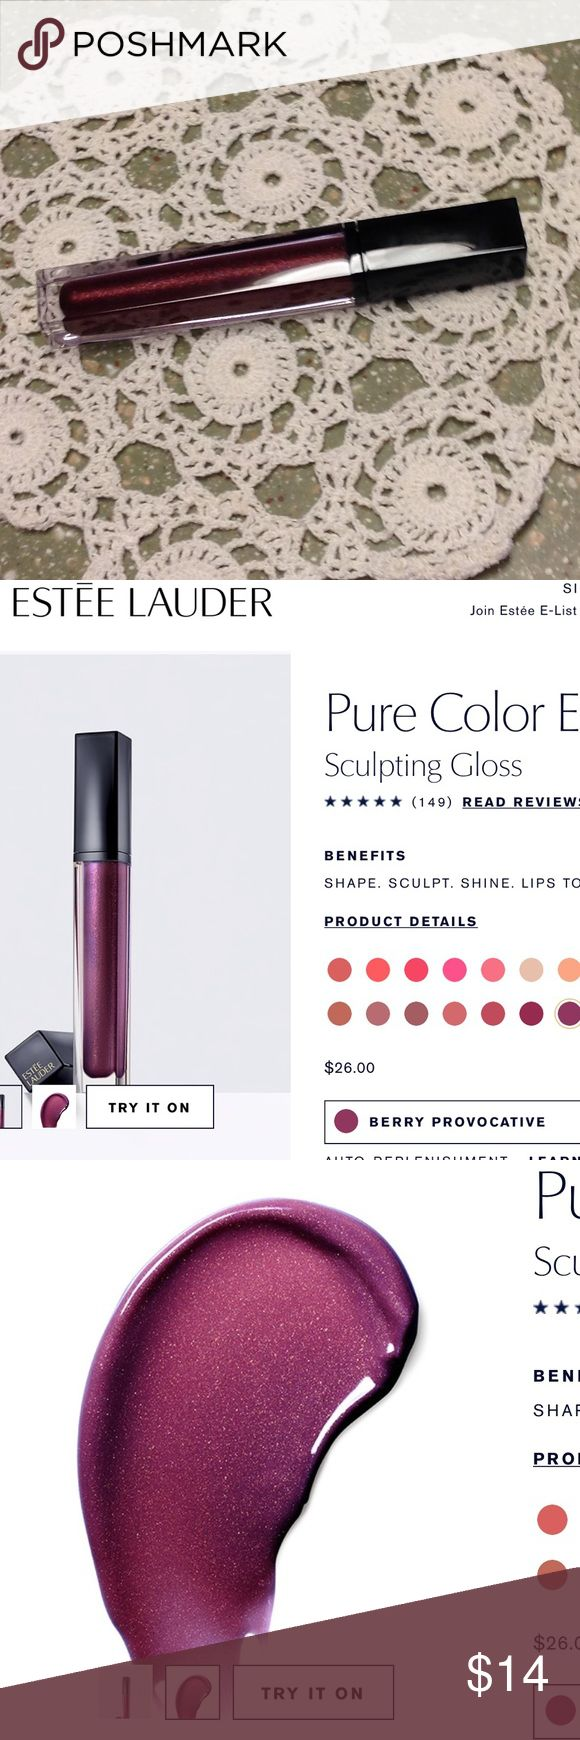 💕NWT💕 ESTEE LAUDER Sculpting Gloss Multi-dimensional optics help create magnified-looking volume for lips with a fuller, enviable effect.  Glide on this hydrating gloss for smooth, lasting shine that starts with a subtle hint of color and builds to the intensity you desire. Immediately, lips are moisturized with no stickiness.  Unique applicator embraces the curves of your lips, letting you shape and color with precise definition.  Each shade comes in the luminous, dimensional finish that…